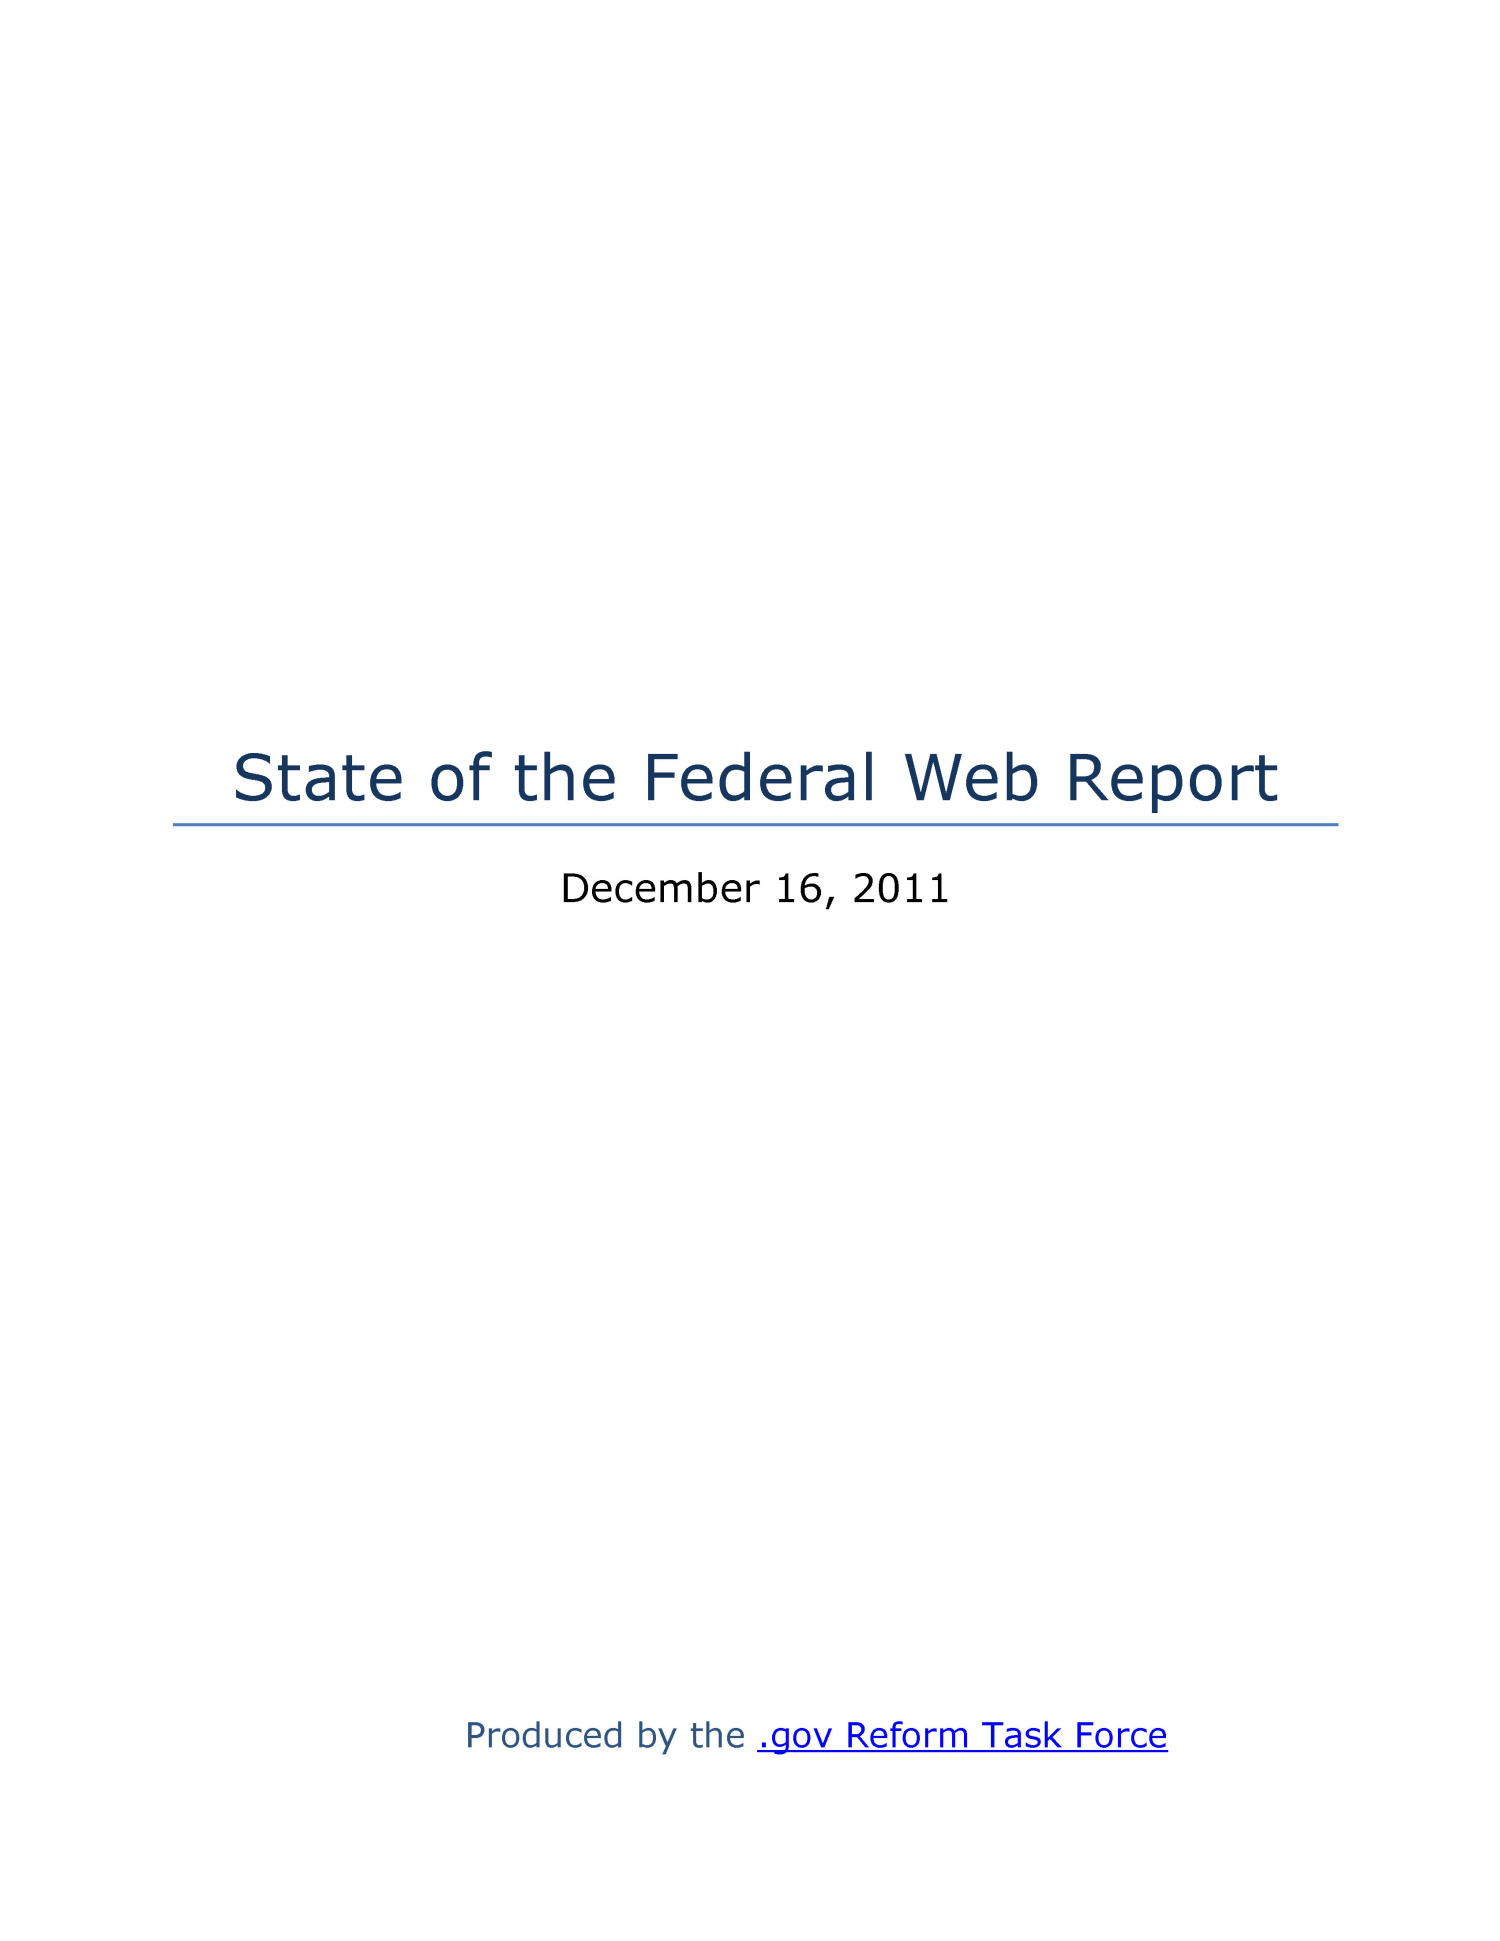 State of the Federal Web Report                                                                                                      Title Page